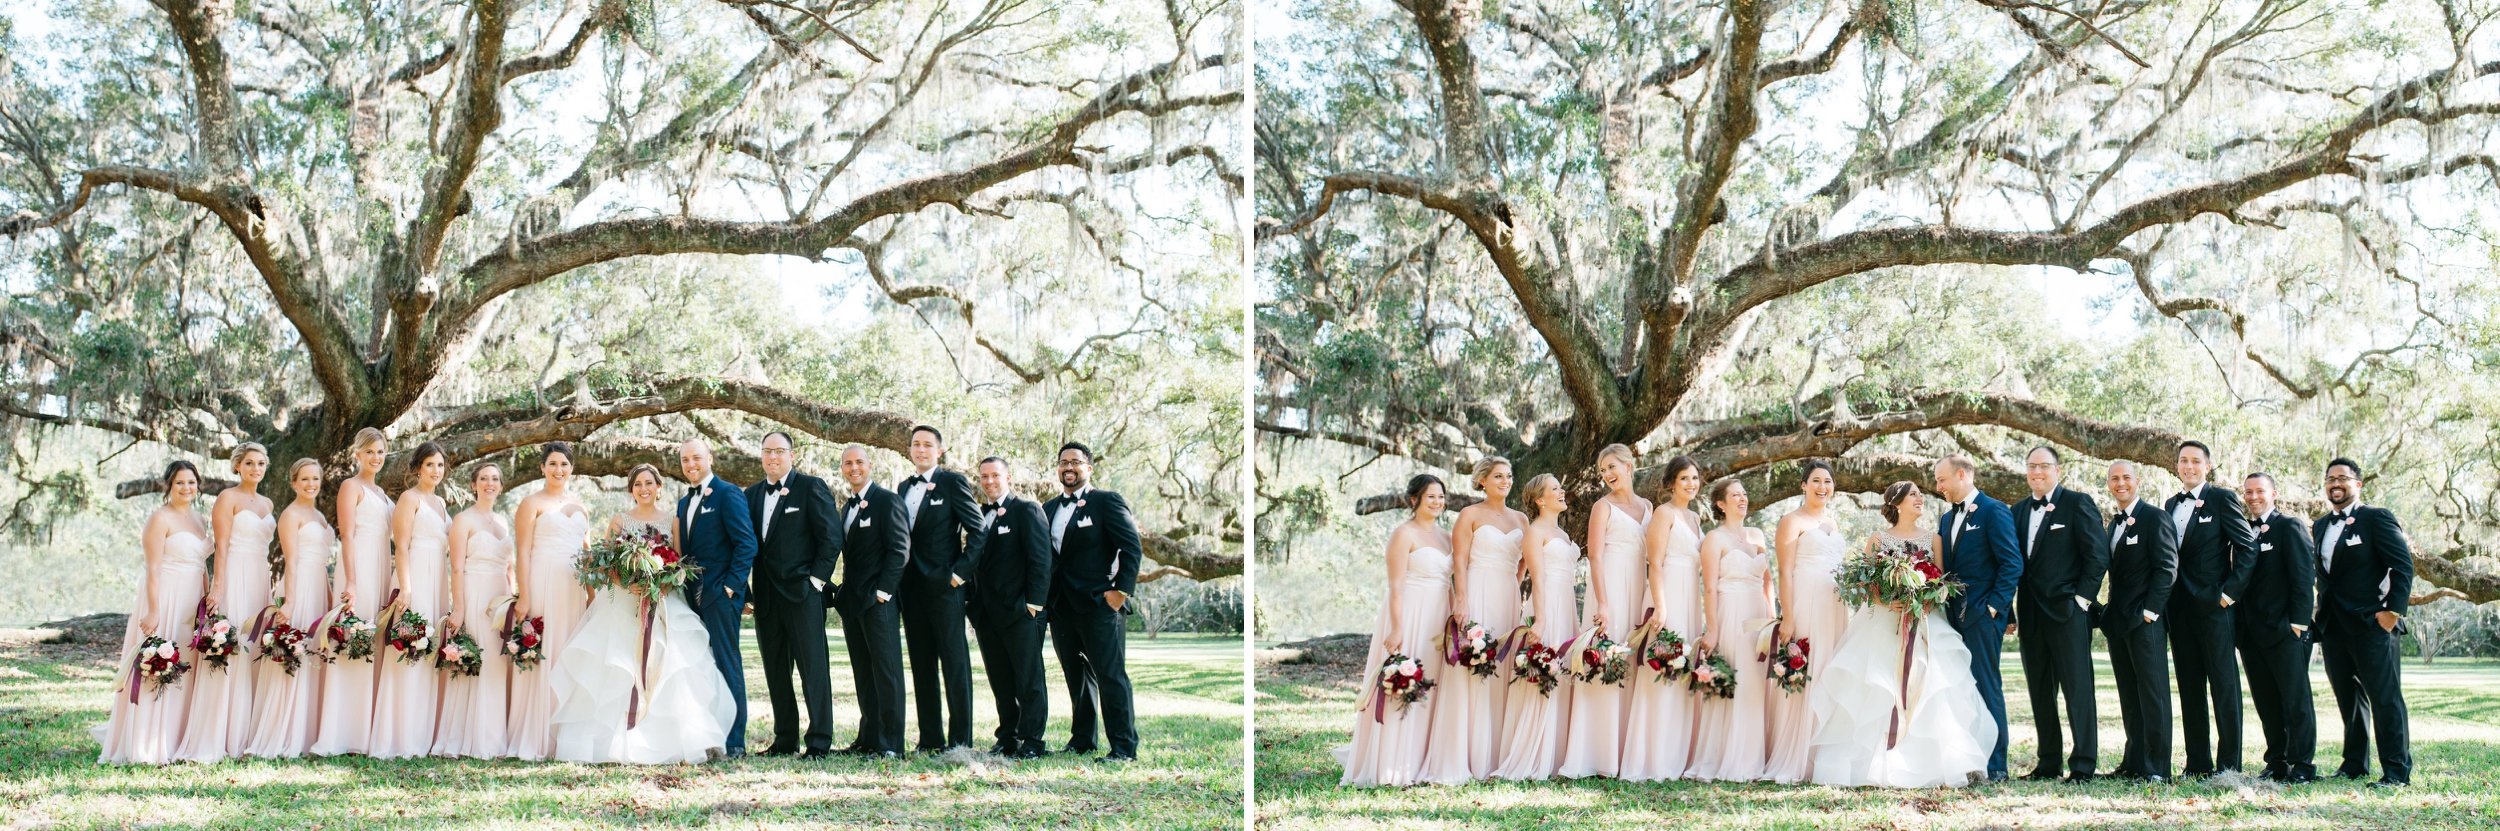 Charleston-wedding-photographer_0117.jpg